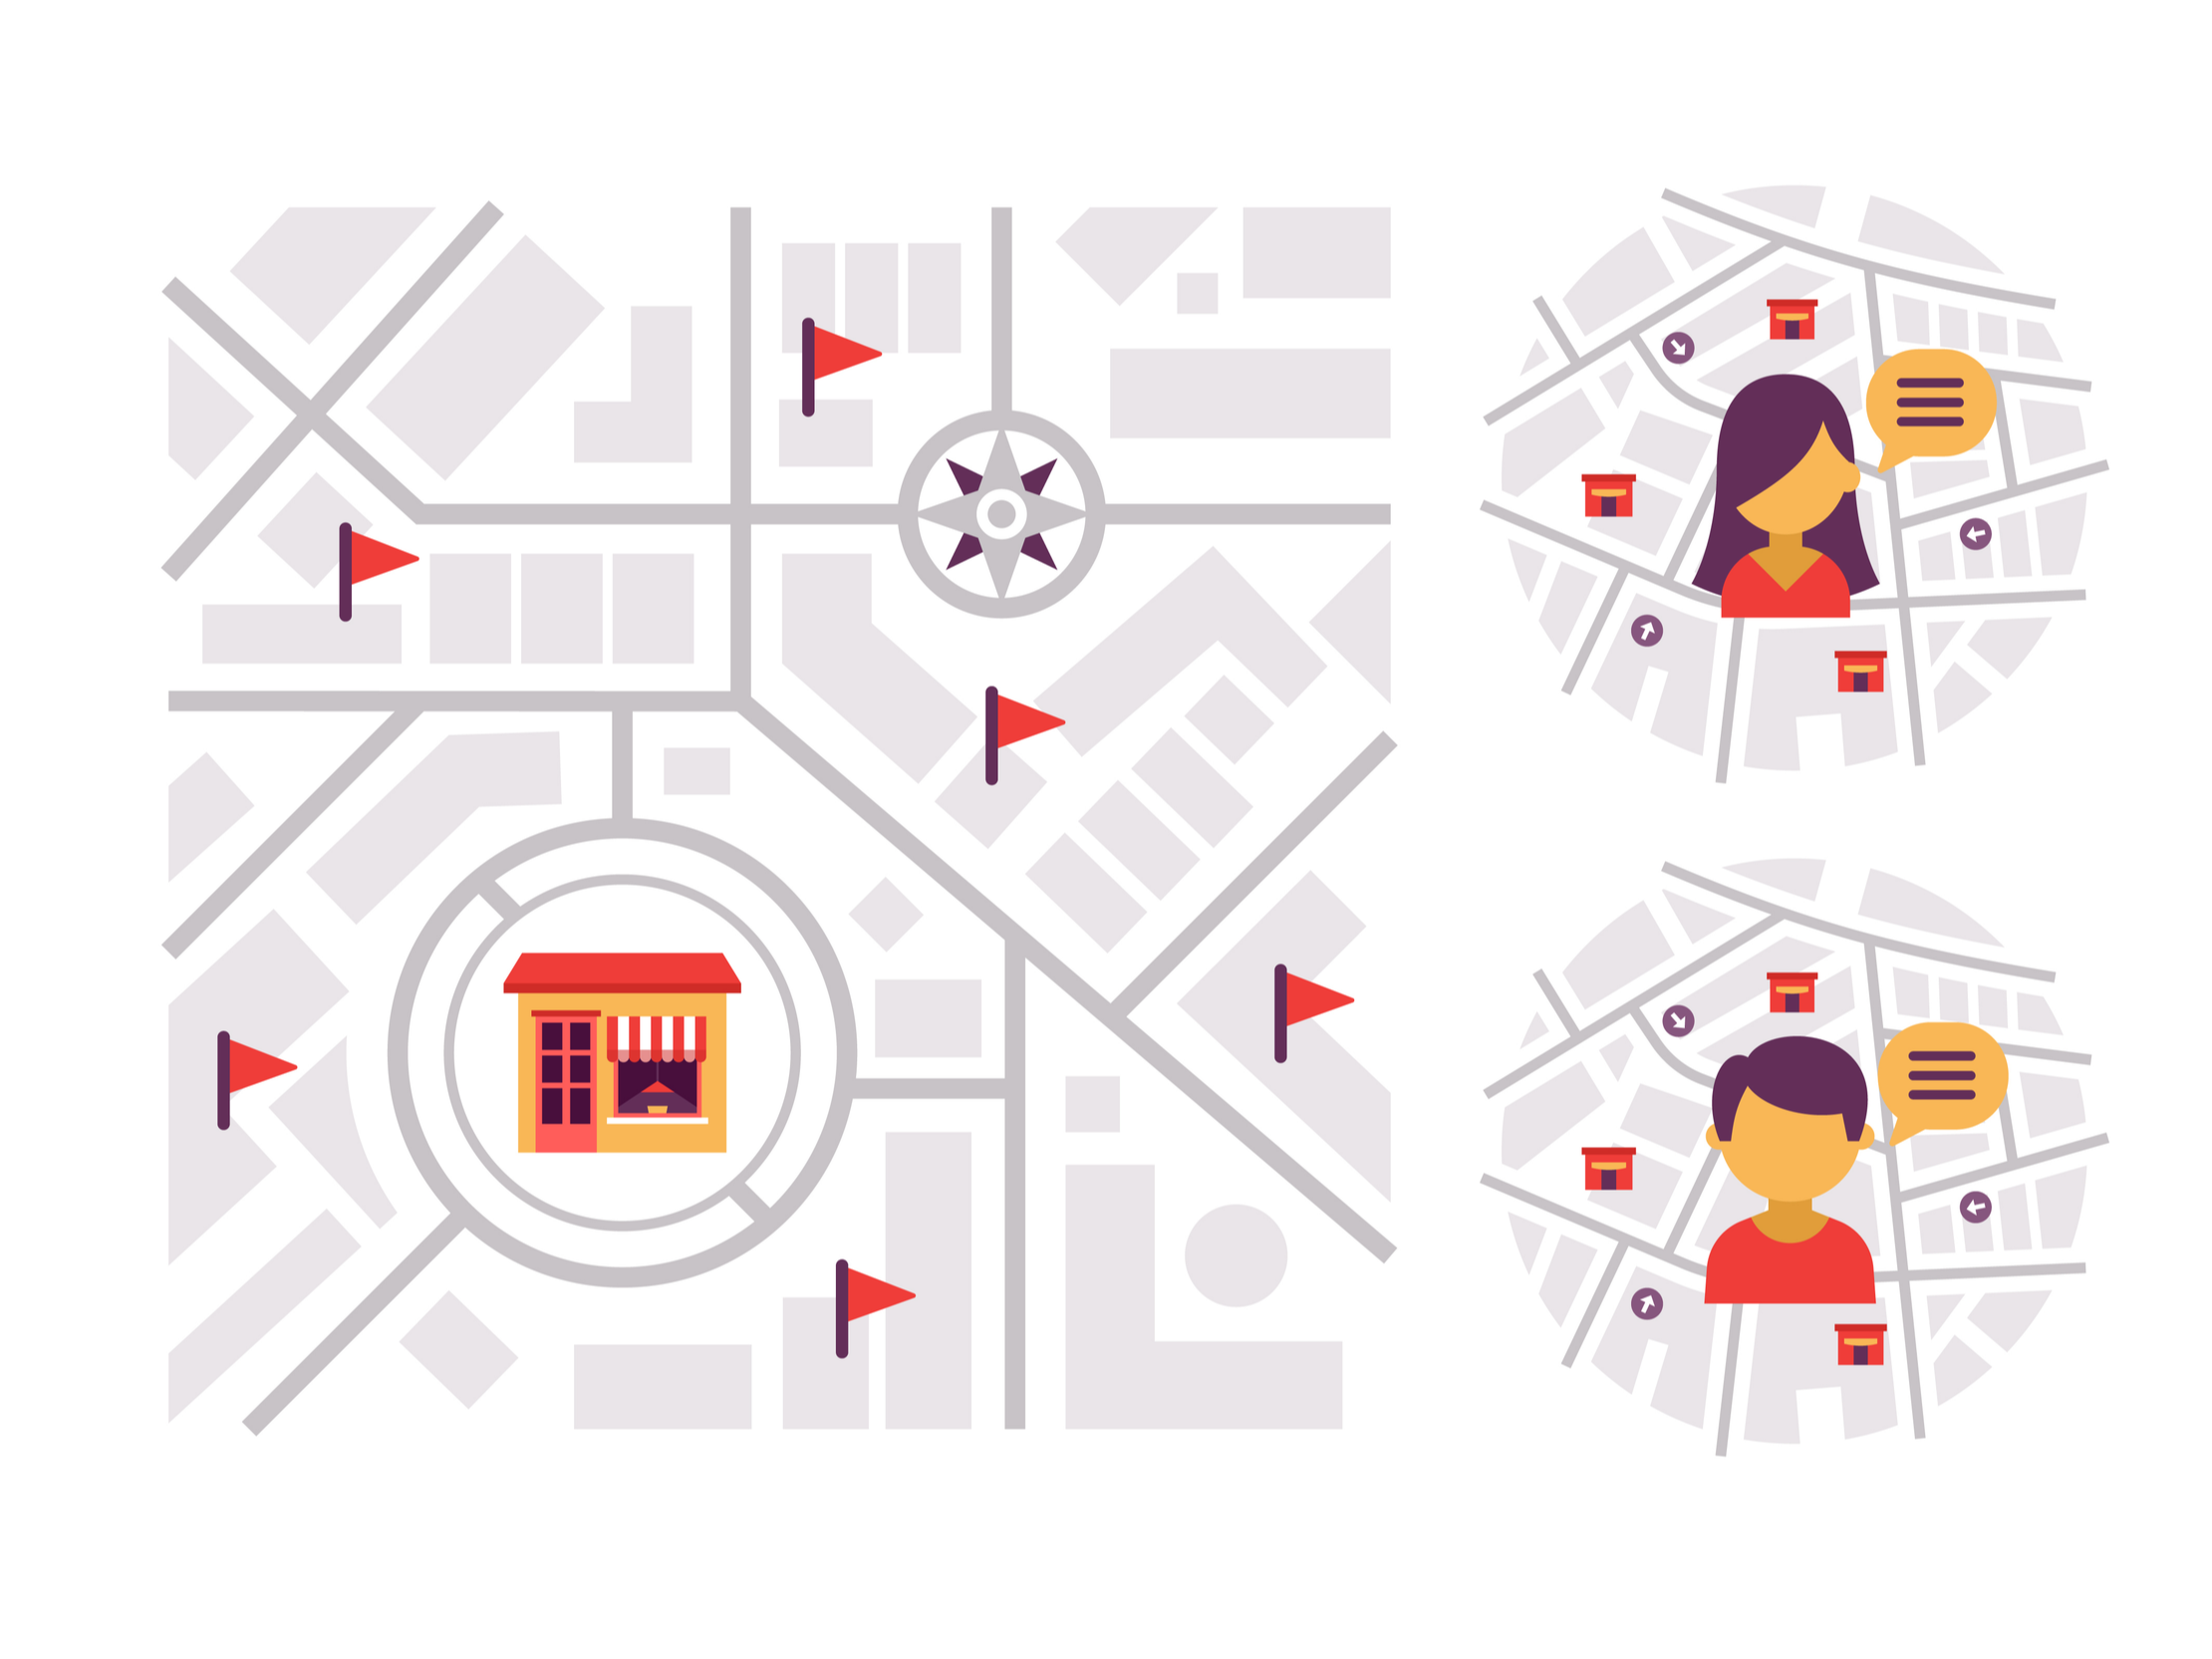 Location-Based Advertising: The Key to Sales Success